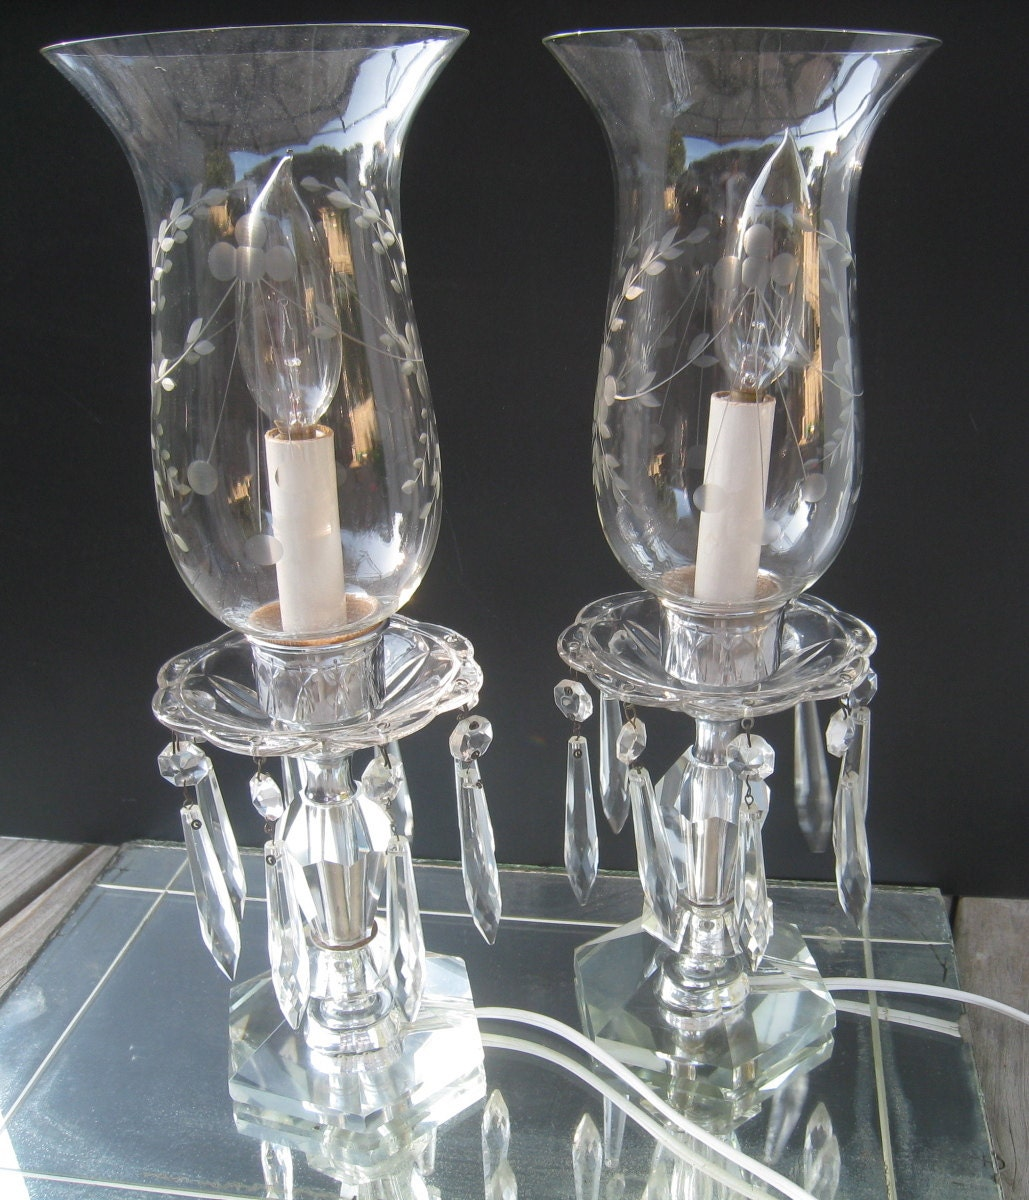 Vintage Etched Crystal Boudoir Lamps With Glass Prisms And